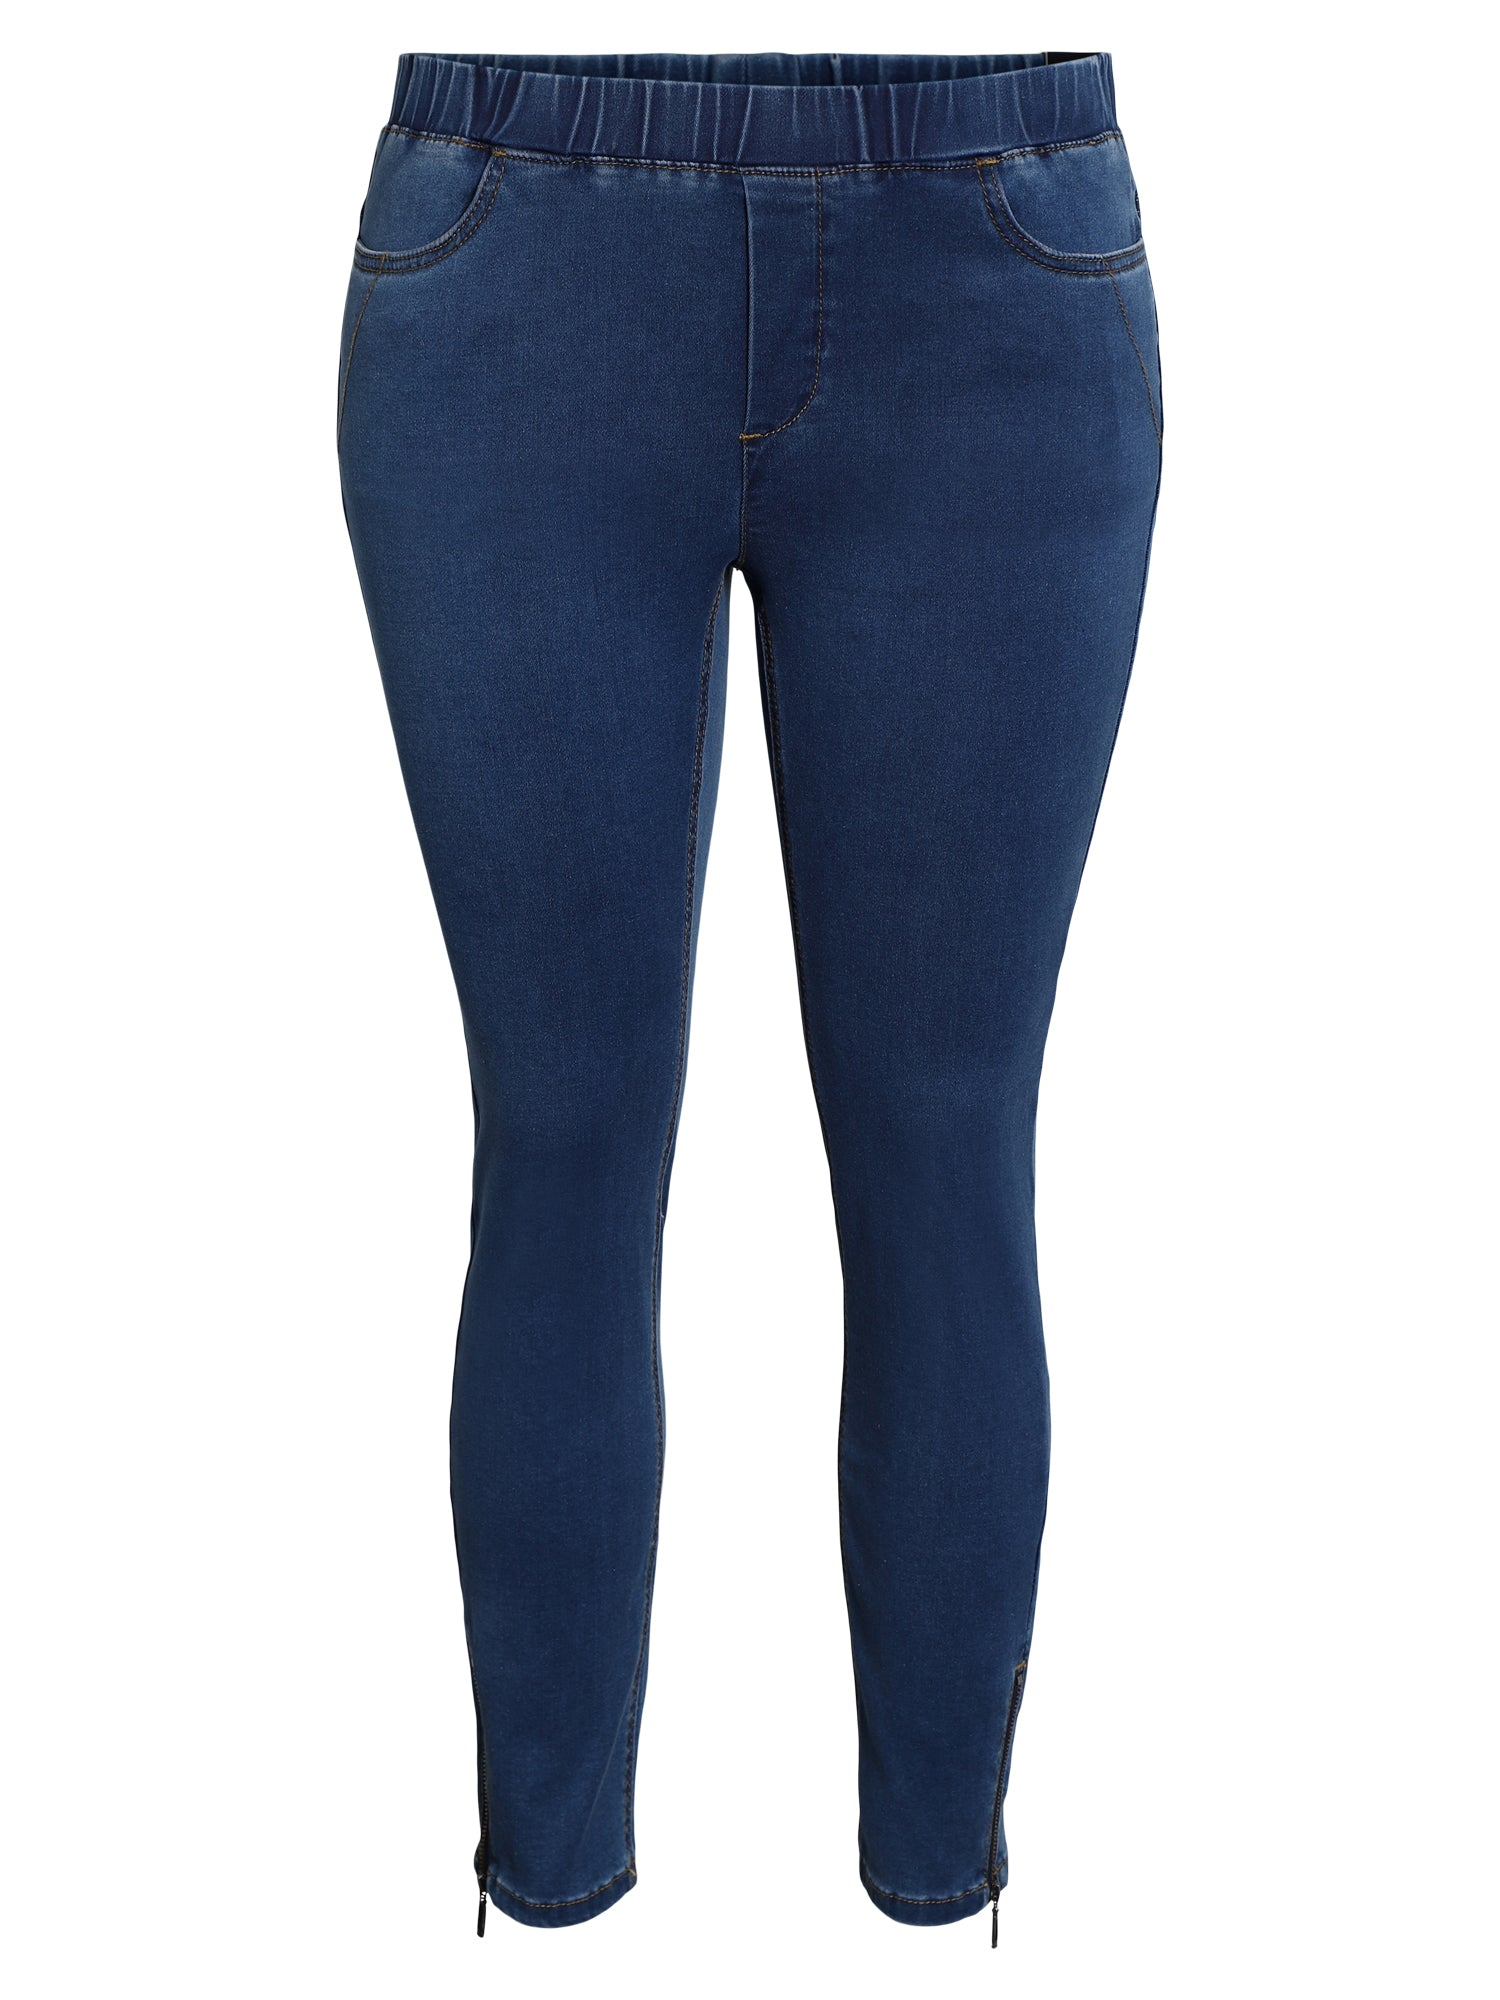 Image of   7/8 bukser med elastisk talje. Slim fit. - Denim Blue